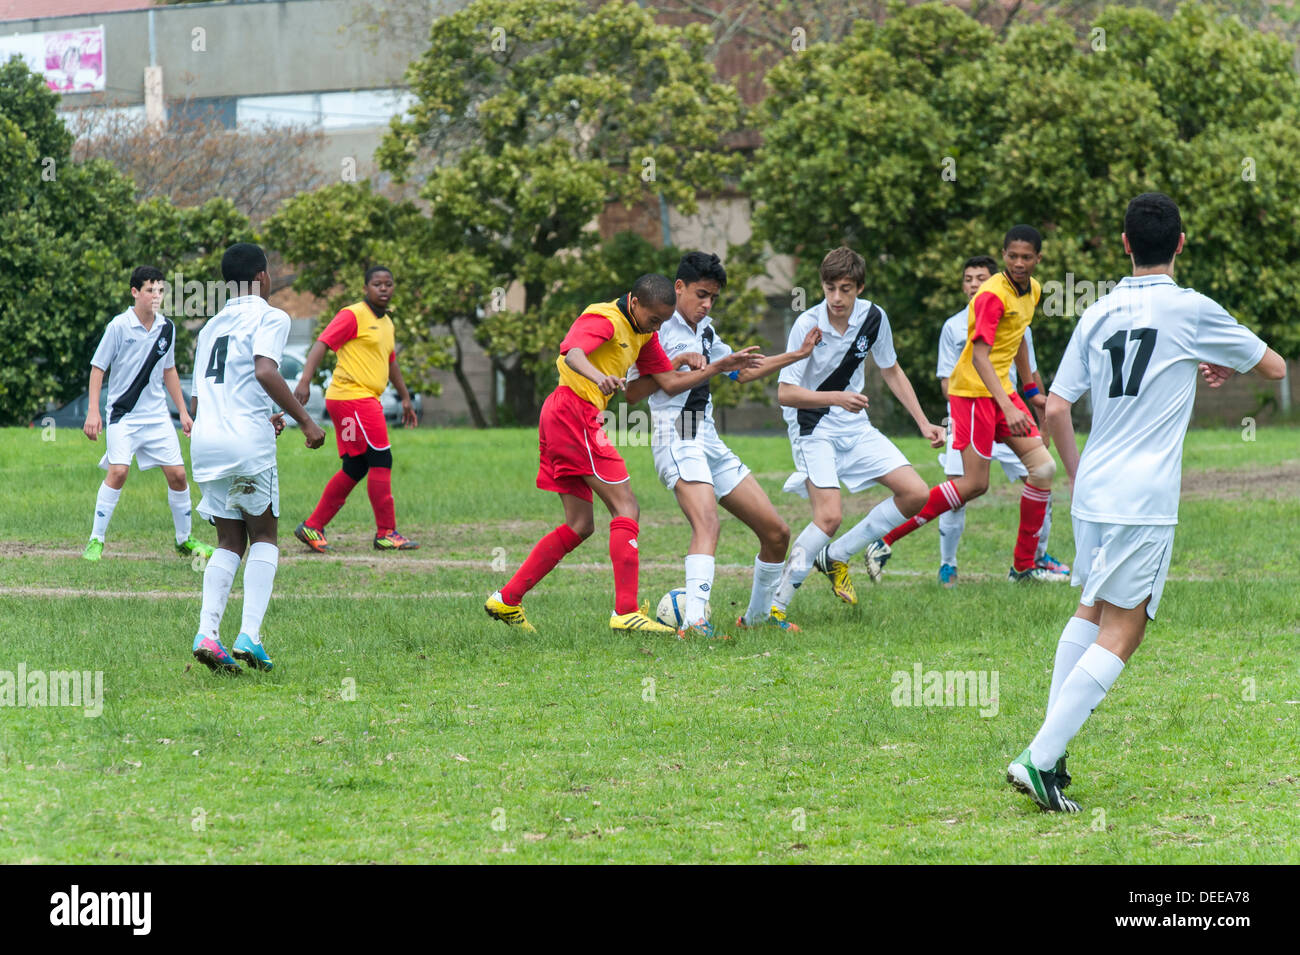 Junior football player tackled by defenders, Cape Town, South Africa - Stock Image